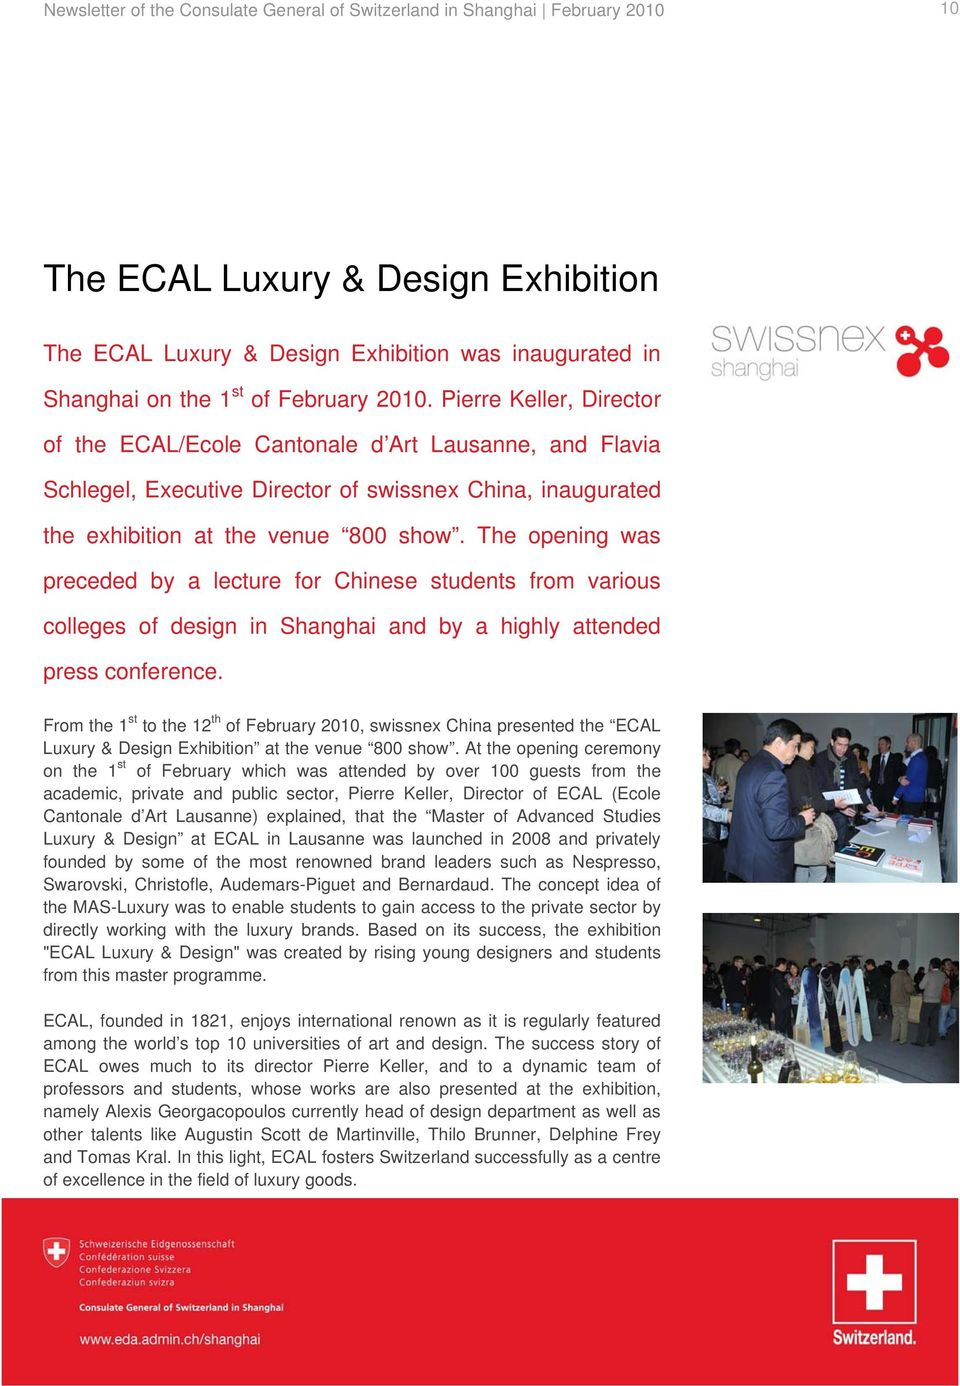 The opening was preceded by a lecture for Chinese students from various colleges of design in Shanghai and by a highly attended press conference.